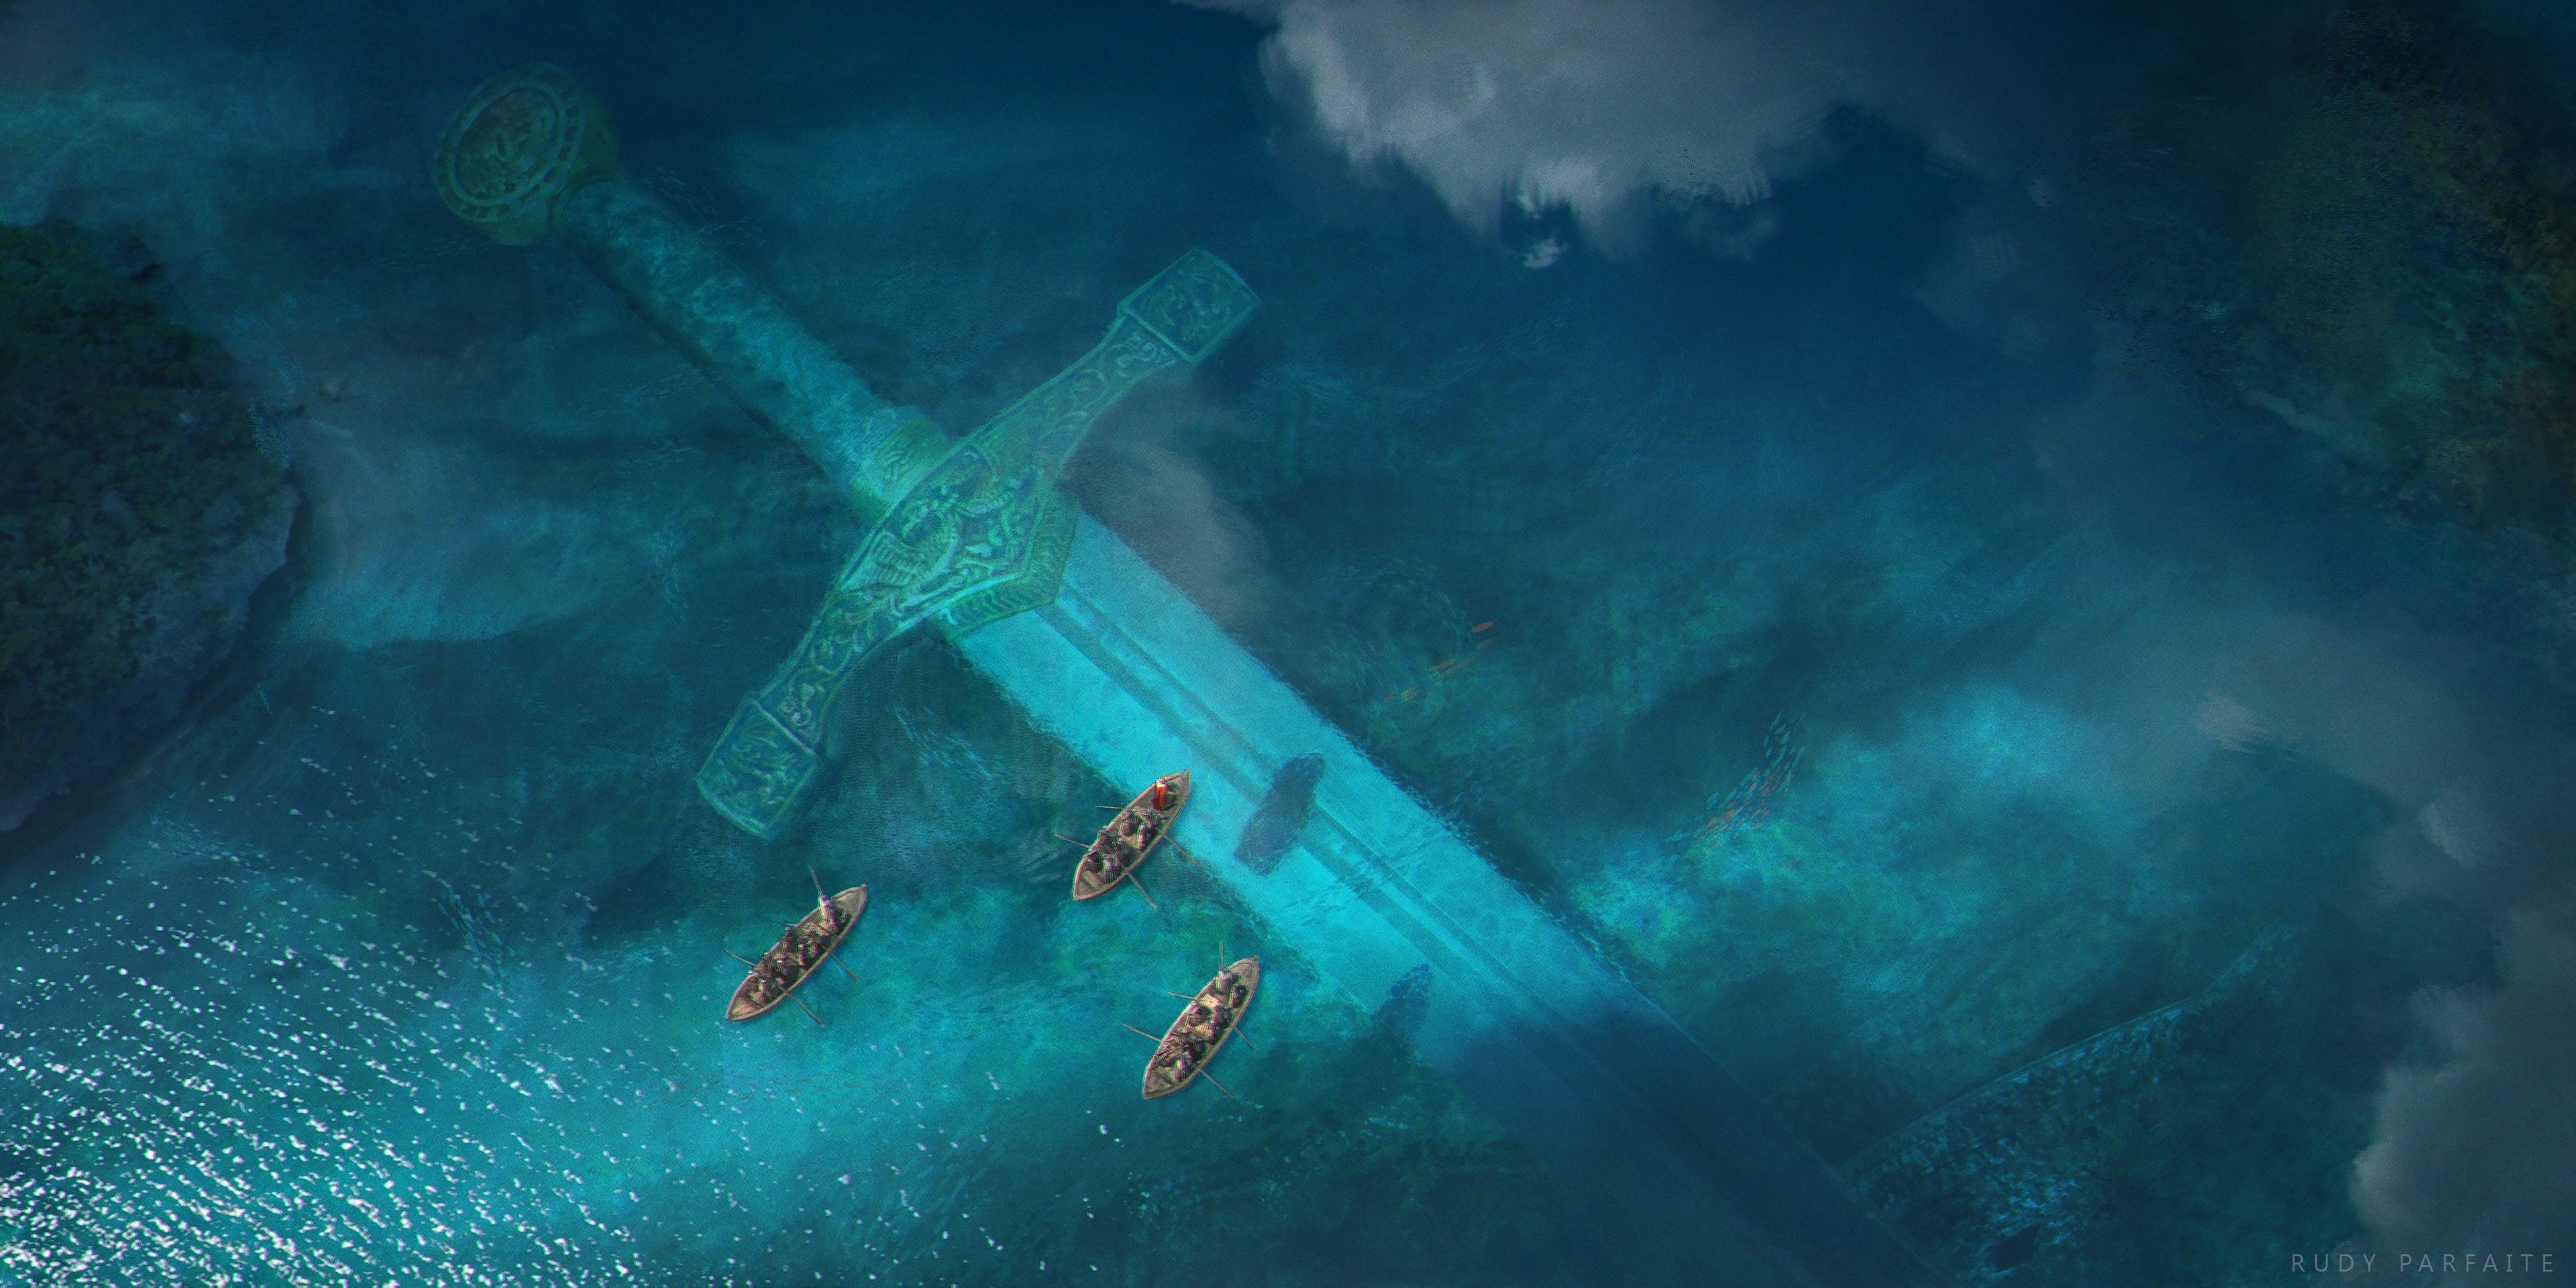 General 3840x1920 water canoes Rudy Parfaite turquoise boat sword watermarked fantasy art